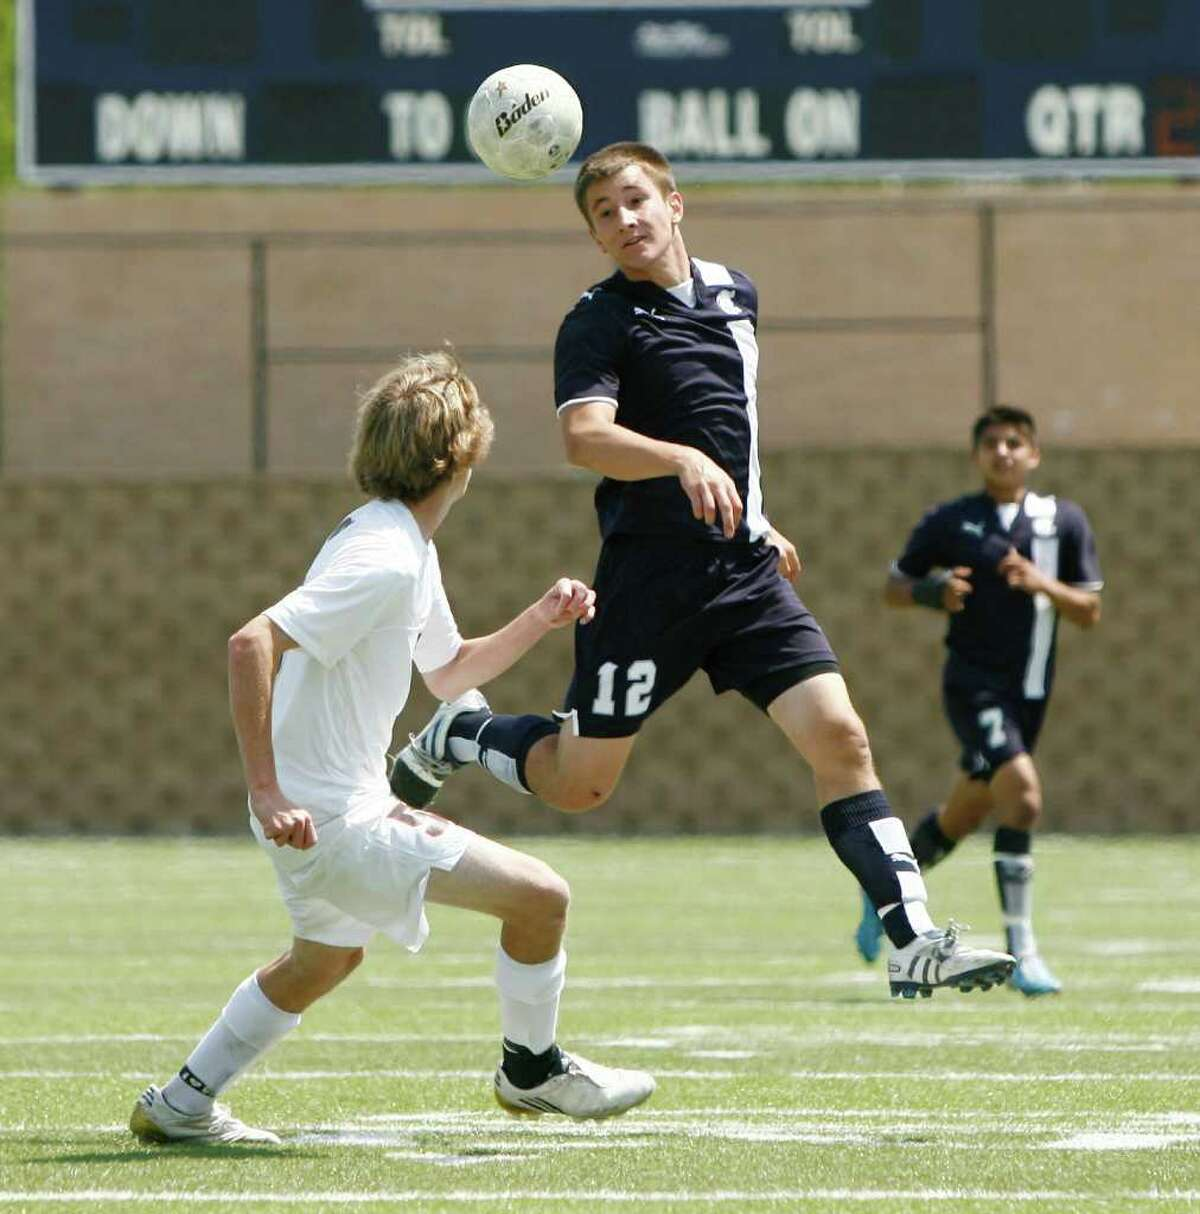 Boerne Champion's Connor Czar (12) heads the ball past Kilgore's Josh Thompson (5) in the UIL Boys 4A state soccer championship in Georgetown on Saturday April 16, 2011. (Erich Schlegel/Special to the Express-News)